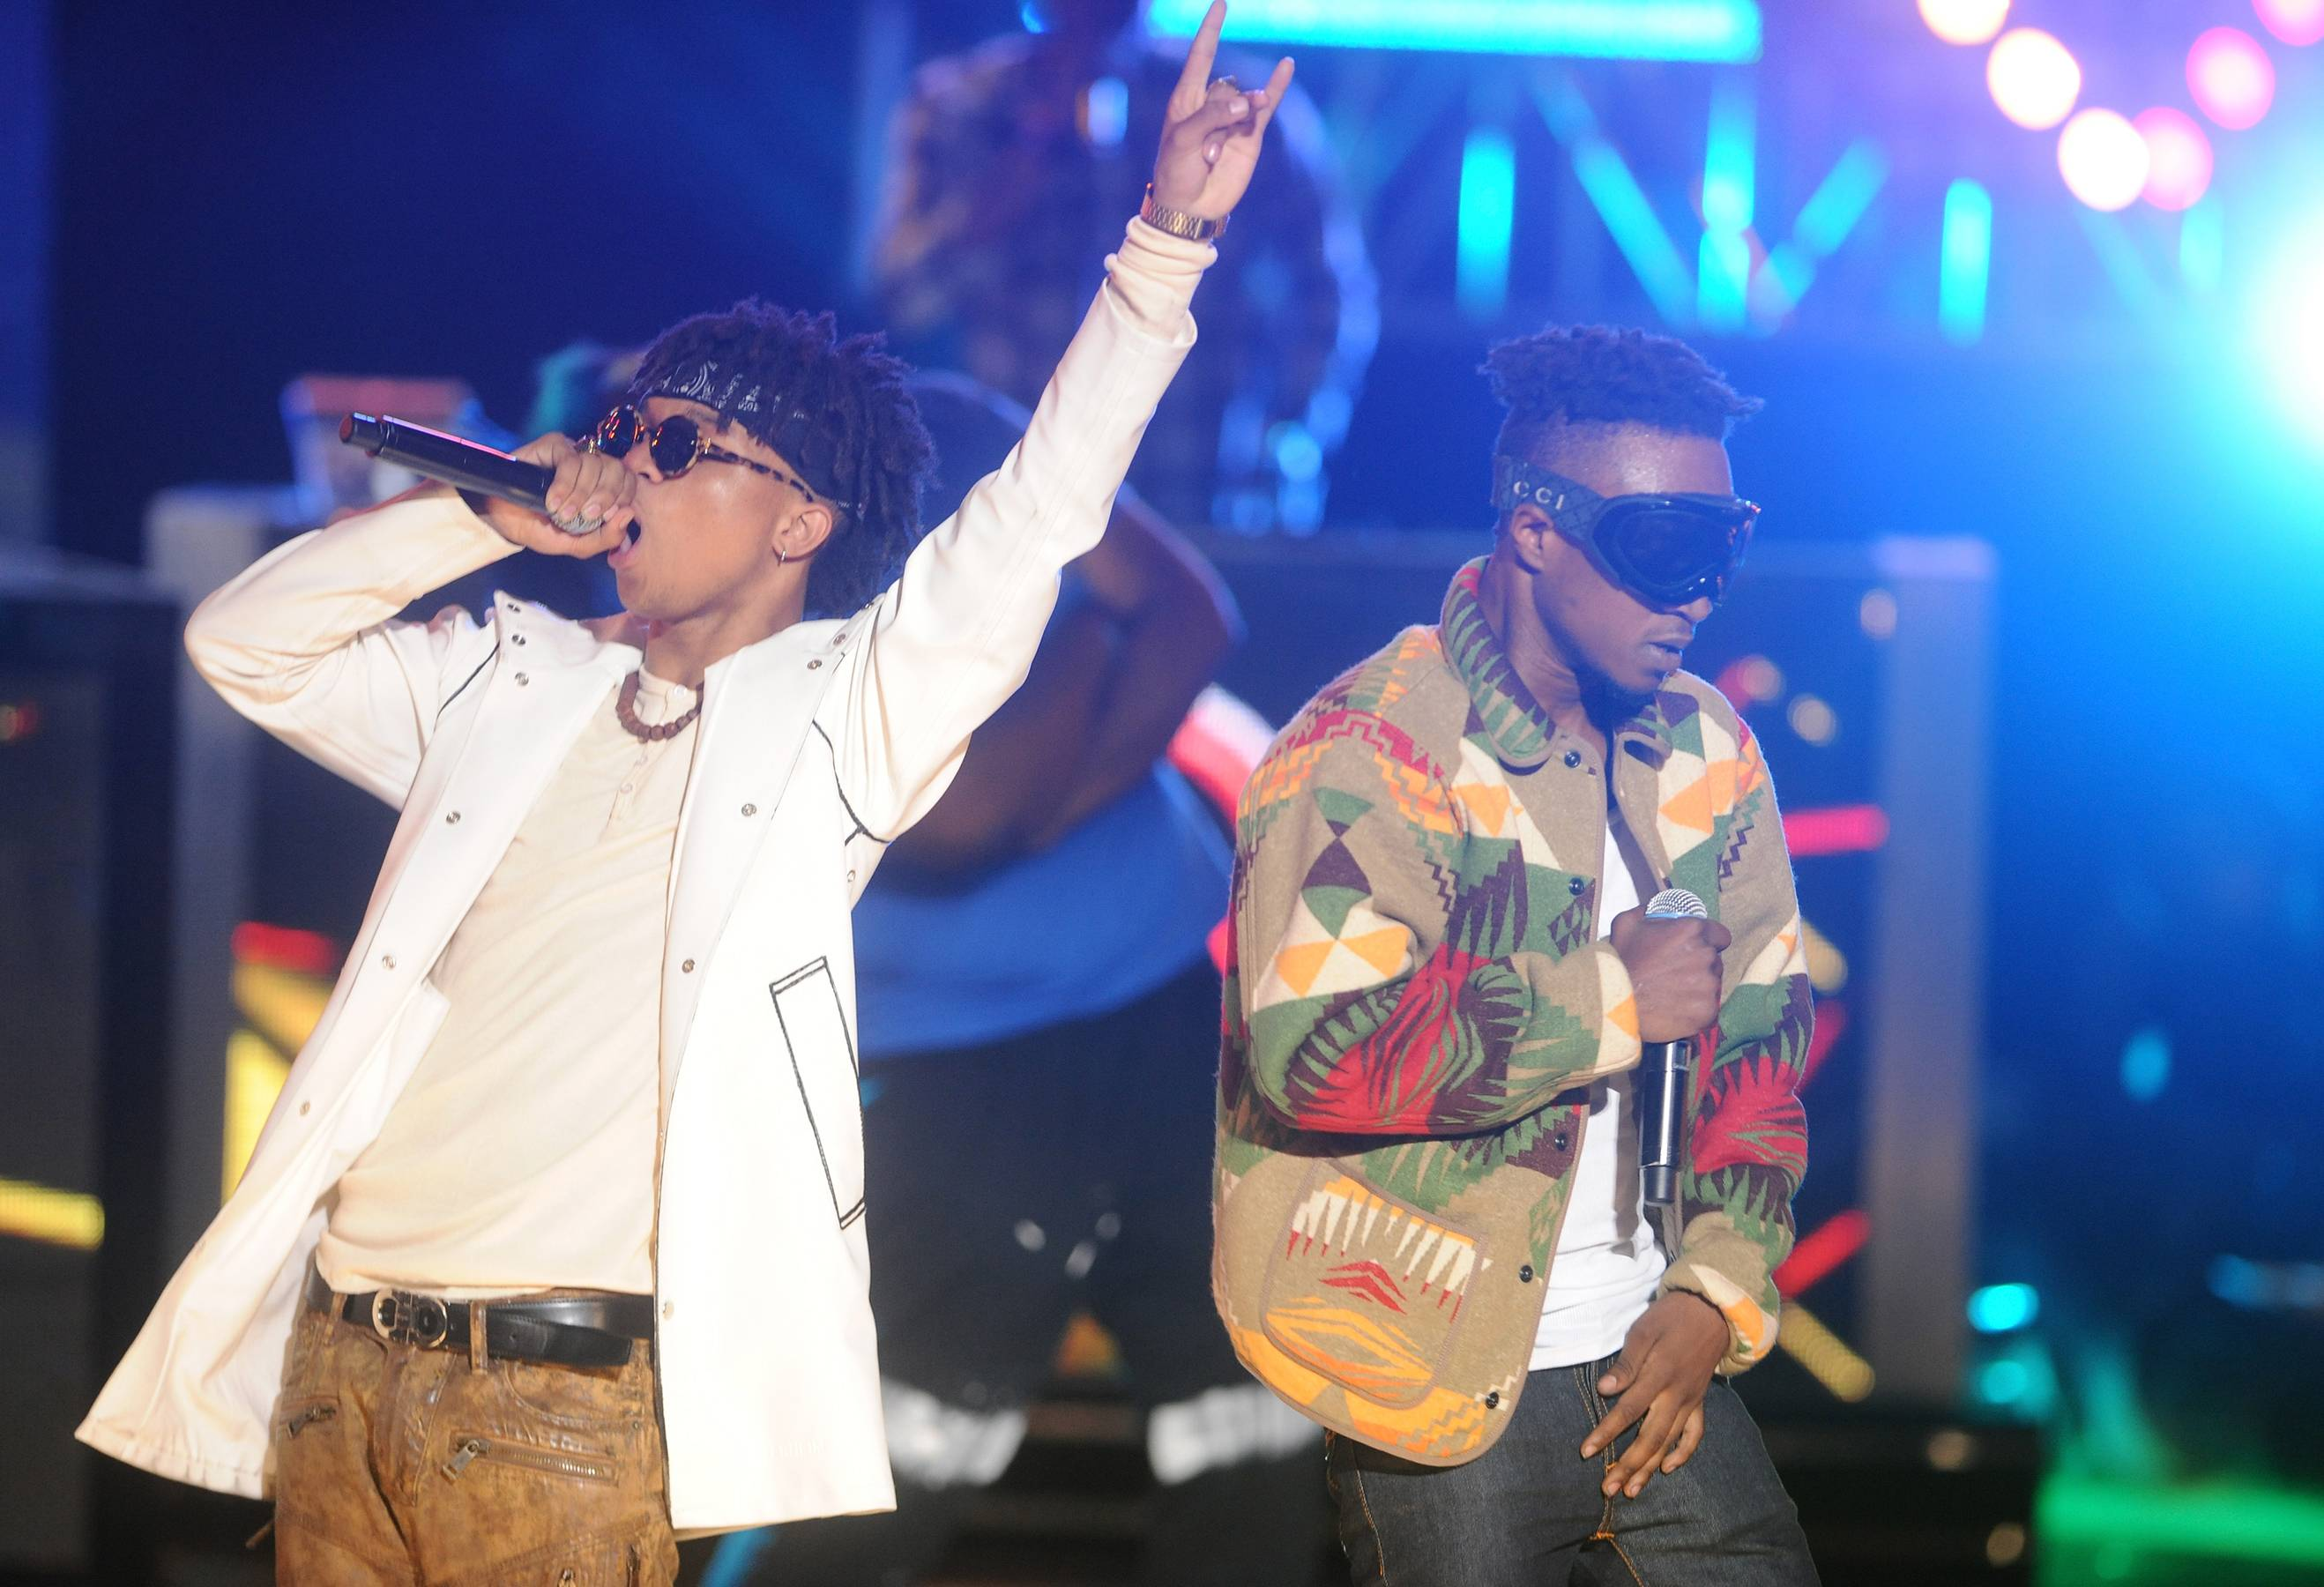 """'Lit Like Bic'  - Swae Lee and Slim Jimmy kick off their debut enjoying the spoils of success at a young age. From money and women to cars and weed and sipping on lean, the """"double trouble"""" duo gives a glimpse into a baller lifestyle. Slim Jimmy breaks down their ashy to classy come up, spitting, """"You say you run your f***n town, we need to link up/I came from that dirty town, look how I clean up.""""(Photo: Brad Barket/BET/Getty Images for BET)"""